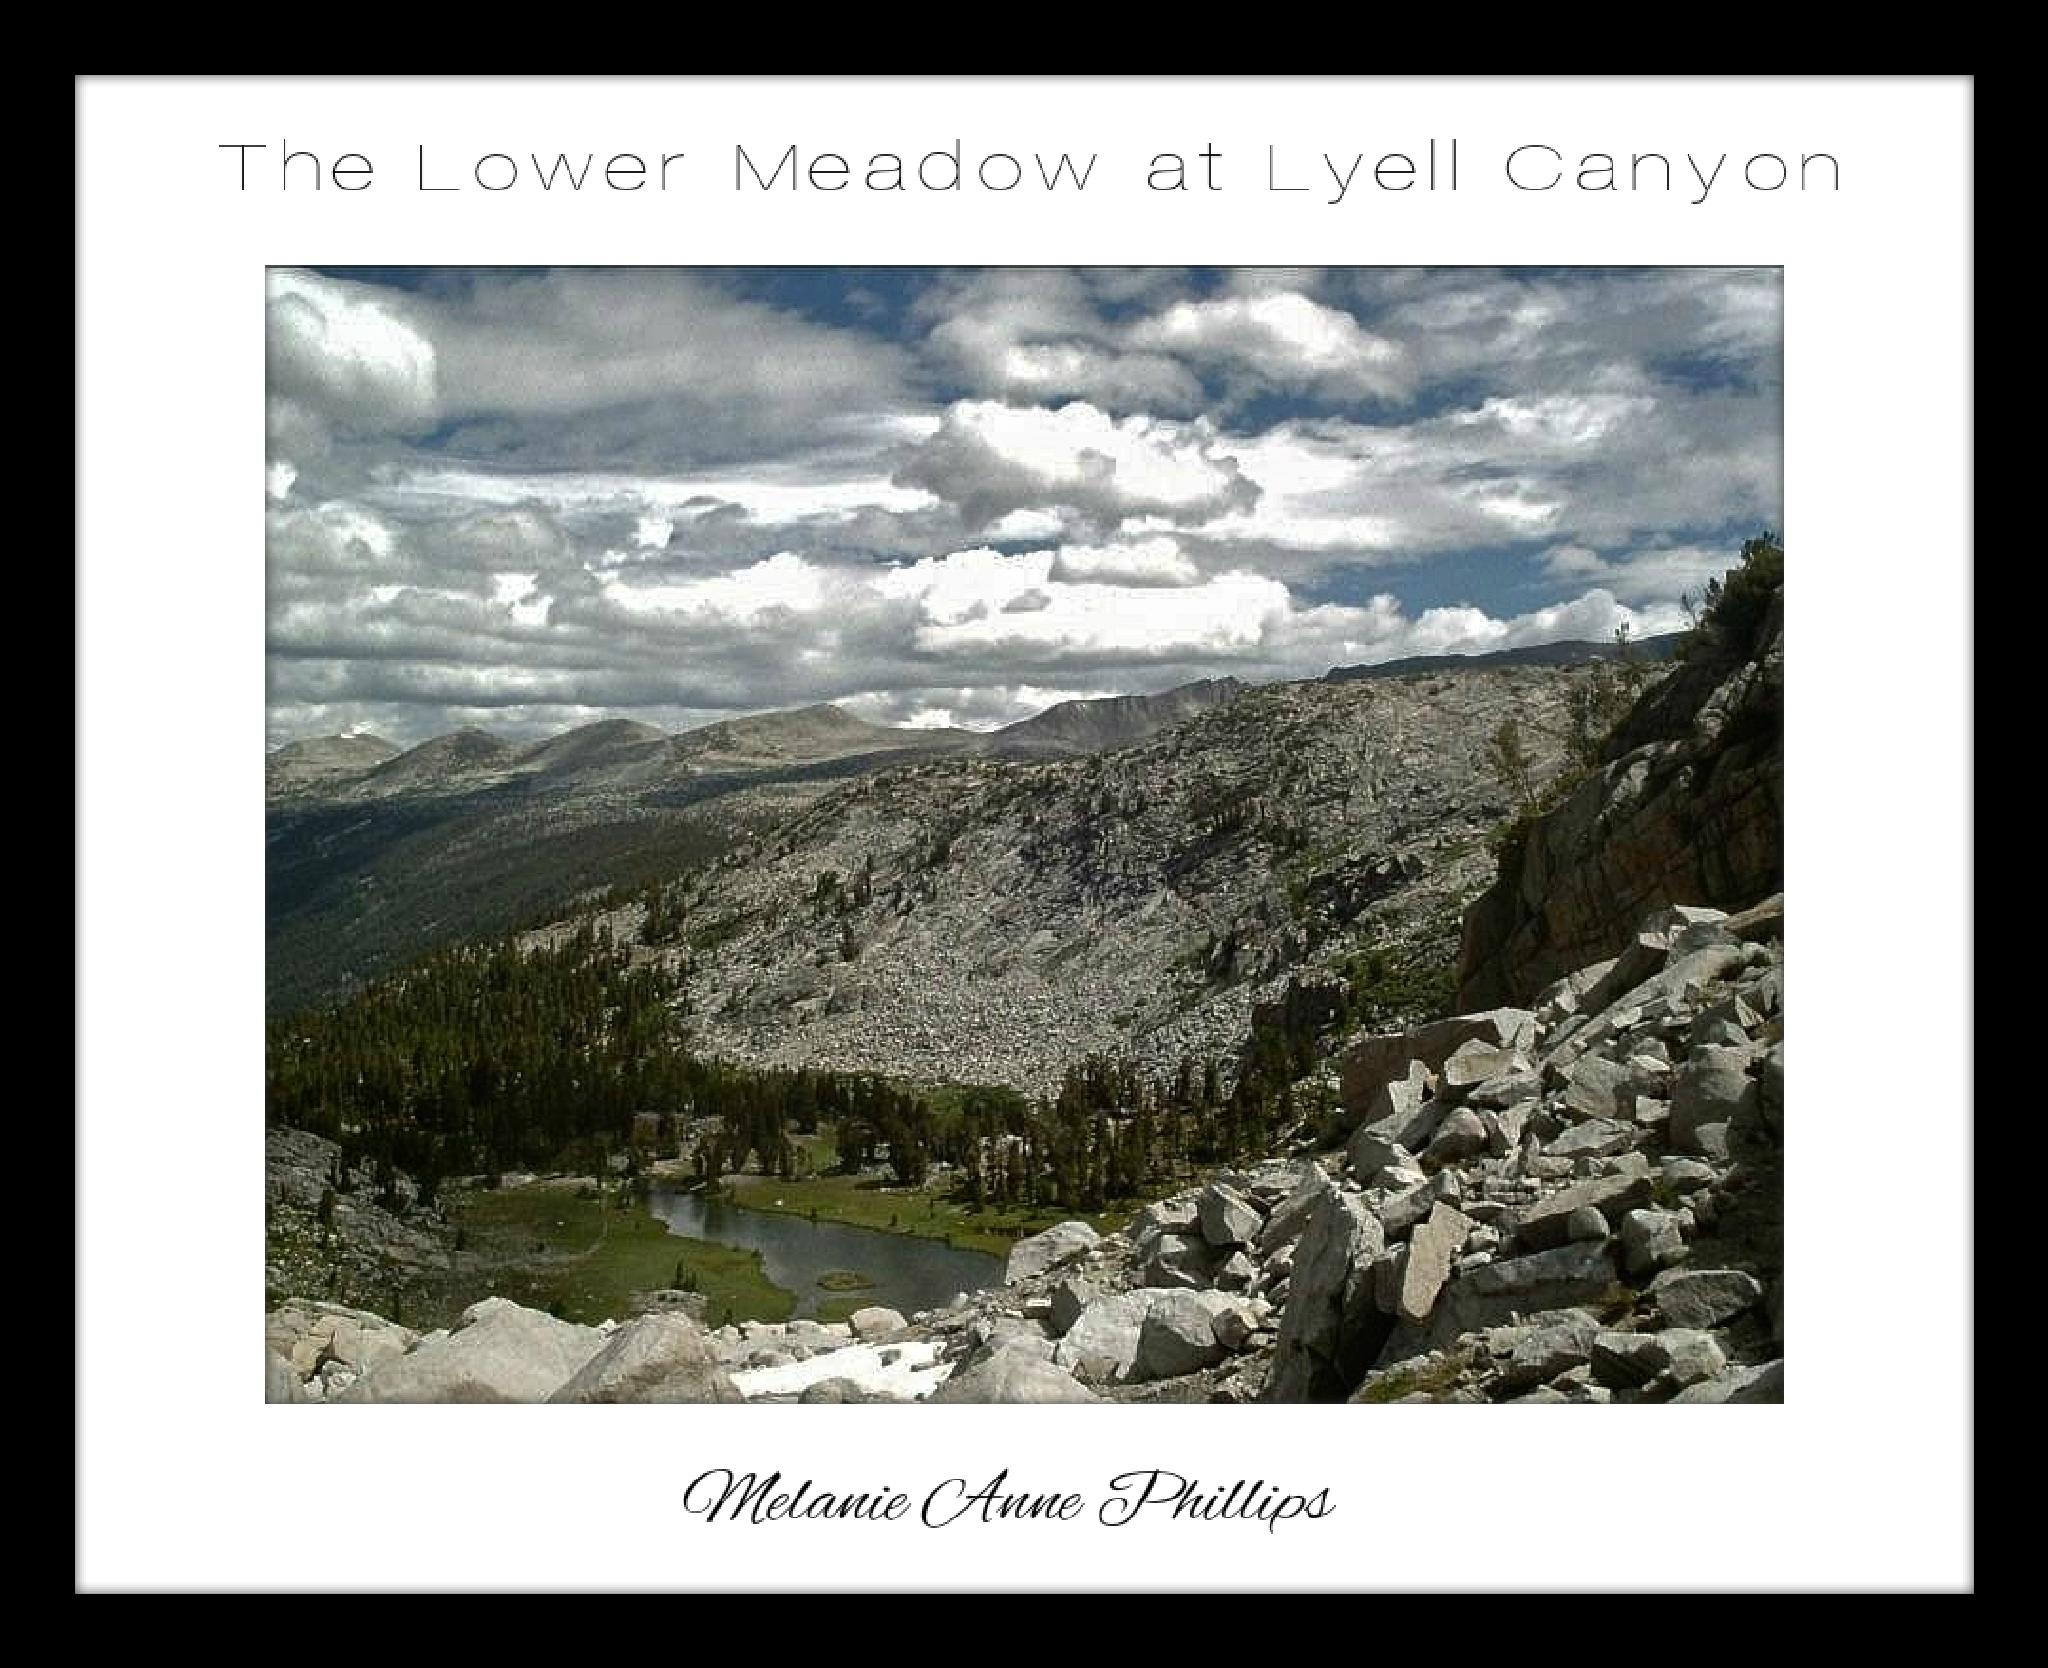 The Lower Meadow at Lyell Canyon by MelanieAnnePhillips